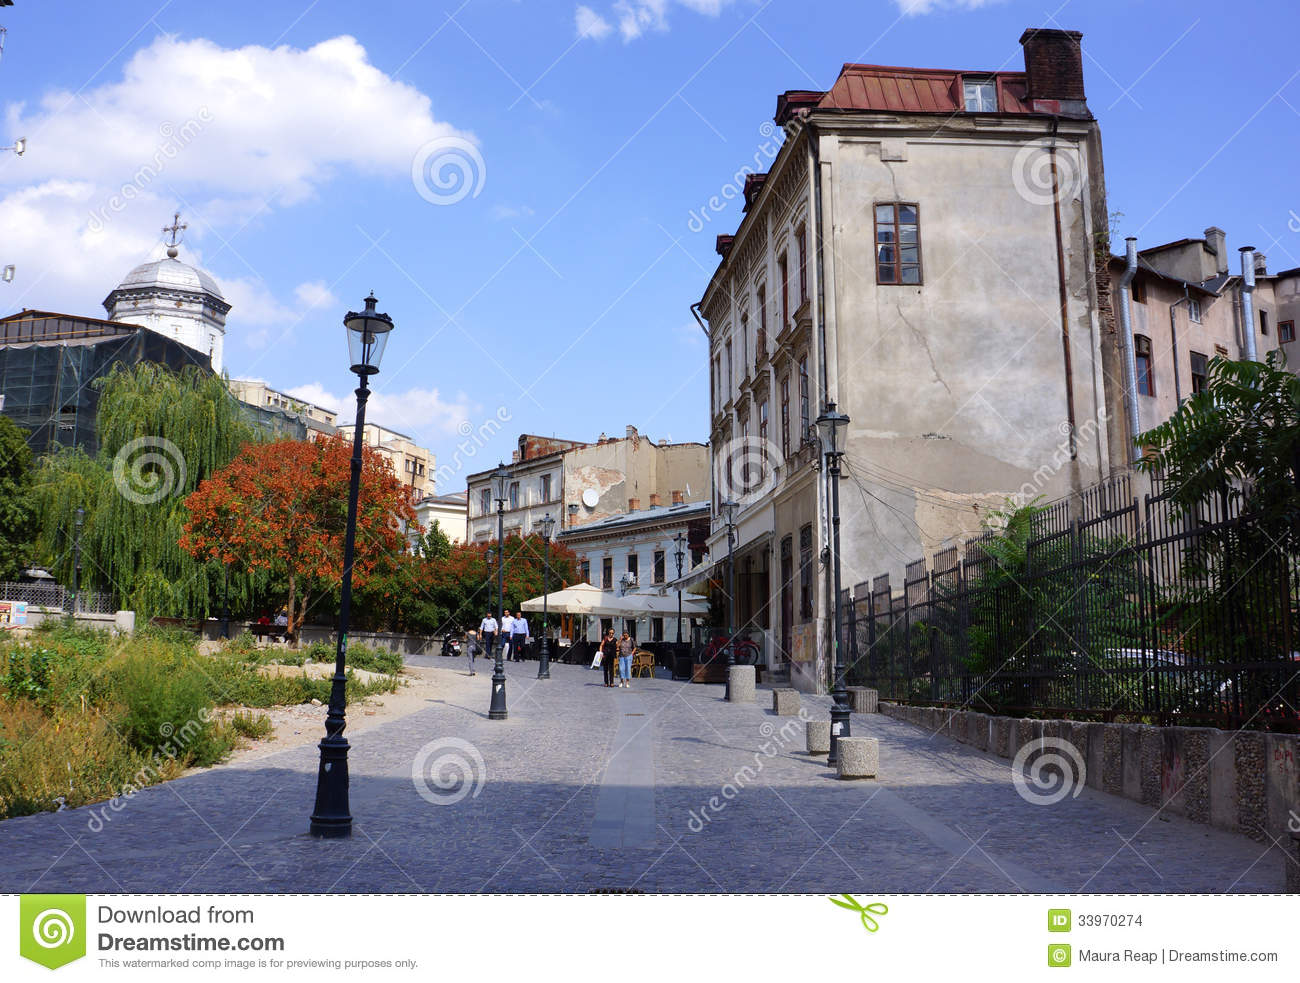 Bucharest Town Editorial Image Image Of Bucharest: Old Town, Bucharest Editorial Stock Image. Image Of Busy